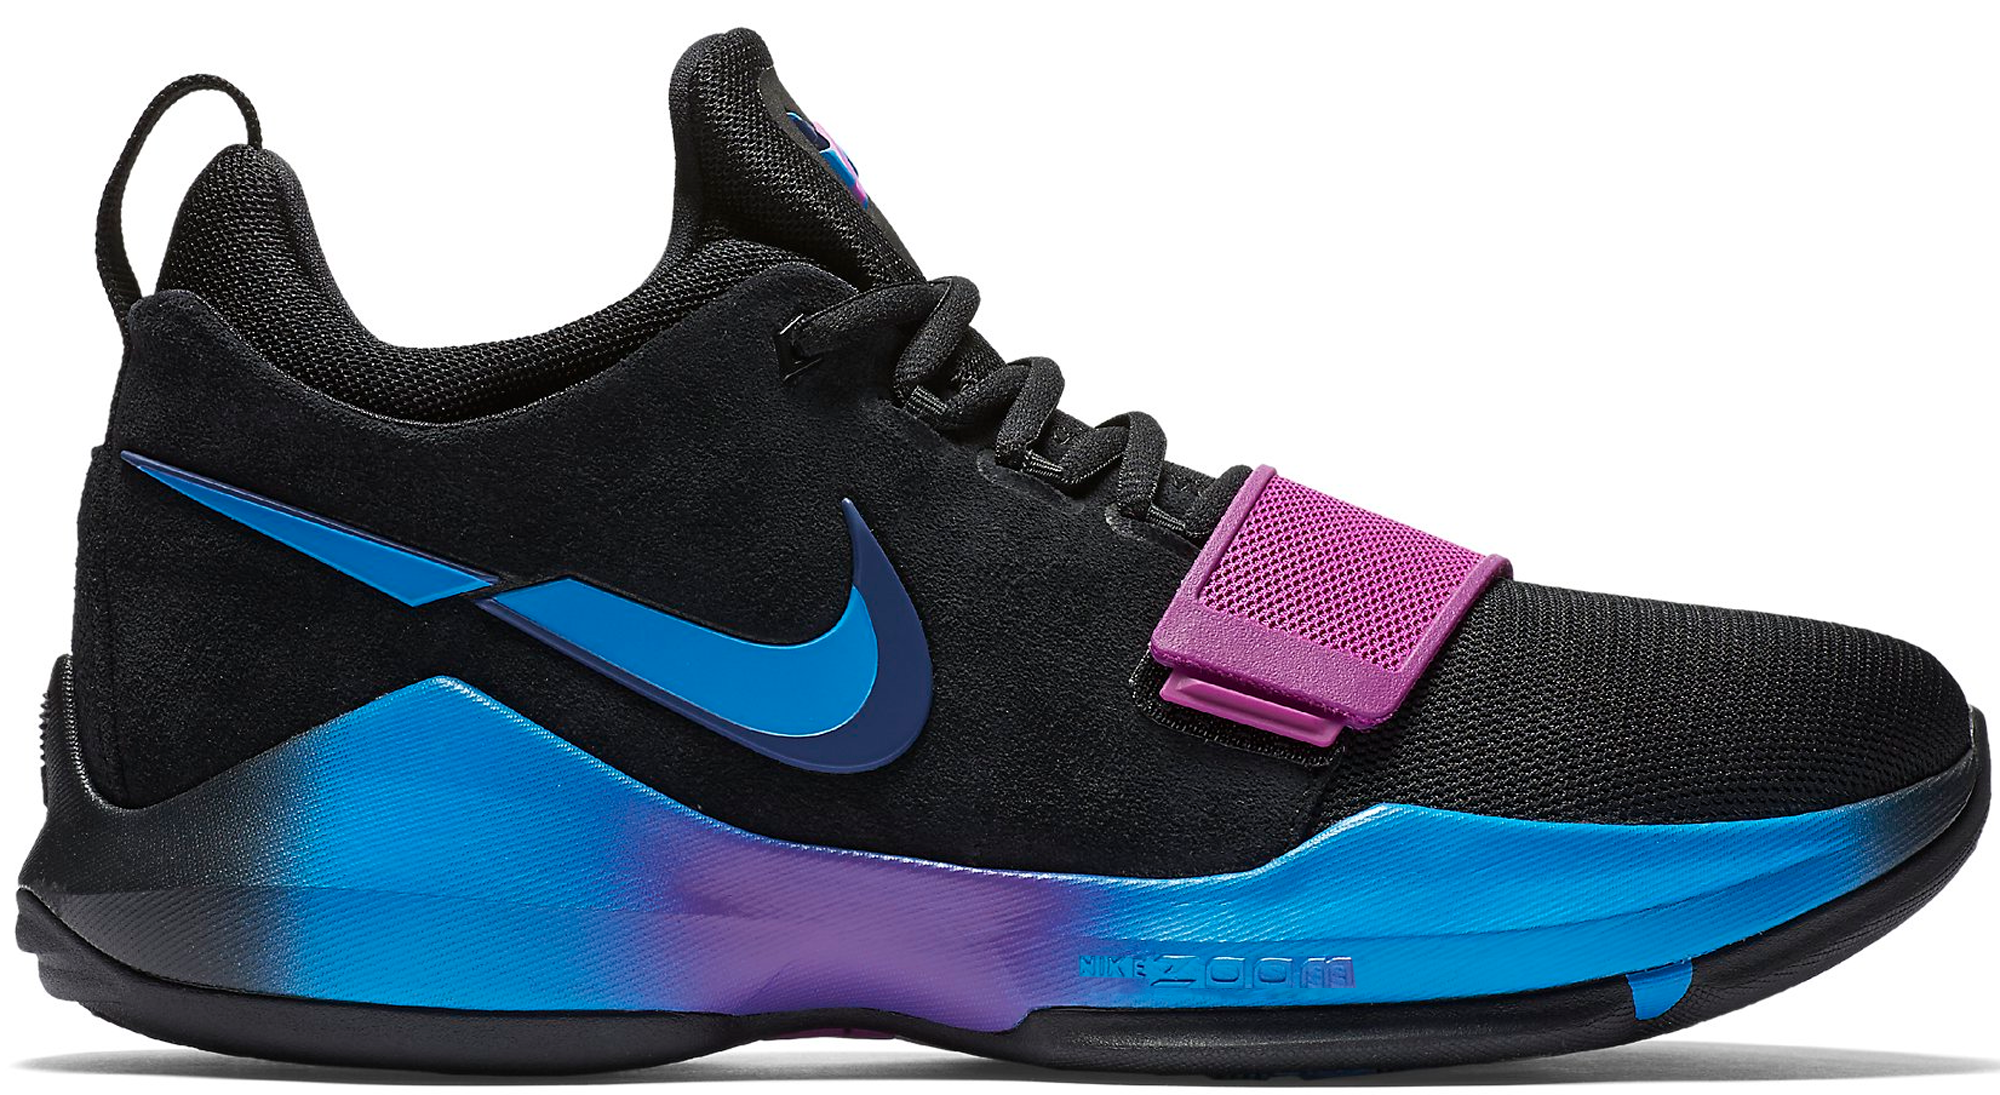 dd17c9942524 Nike PG 1 Flip The Switch - StockX News